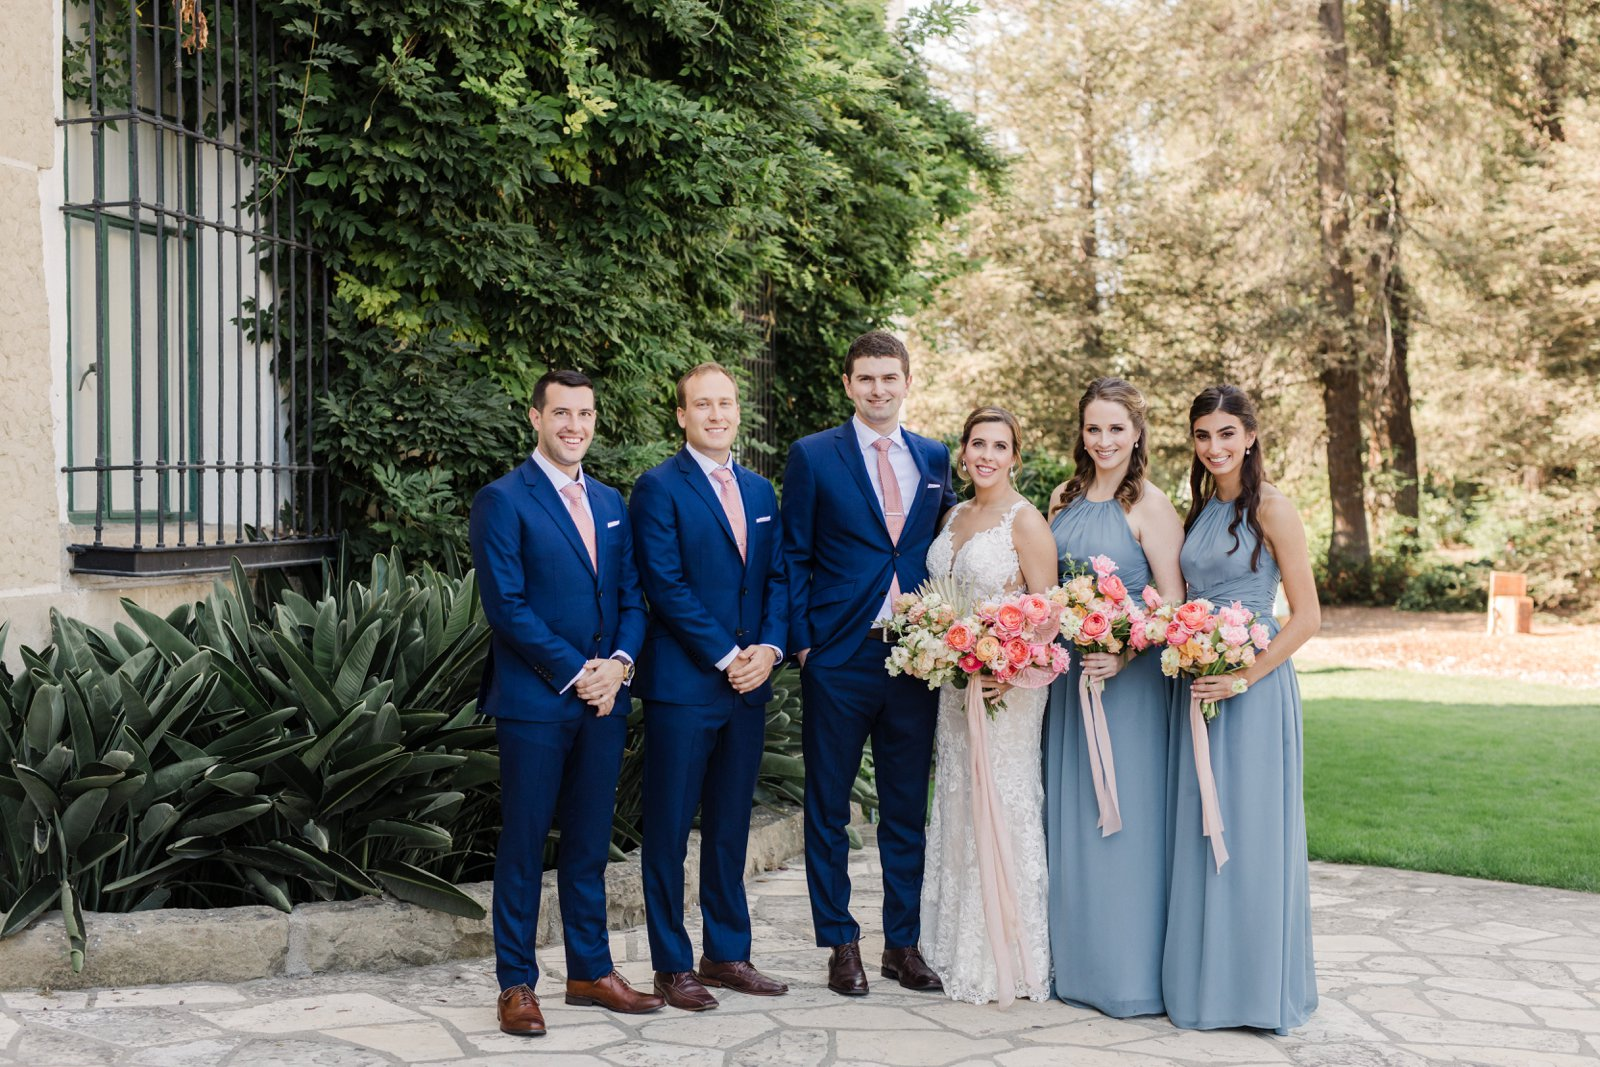 www.santabarbarawedding.com | Anna Delores Photography | Kimpton Canary Hotel | Onyx + Redwood | Idlewild Floral | Bridal Party